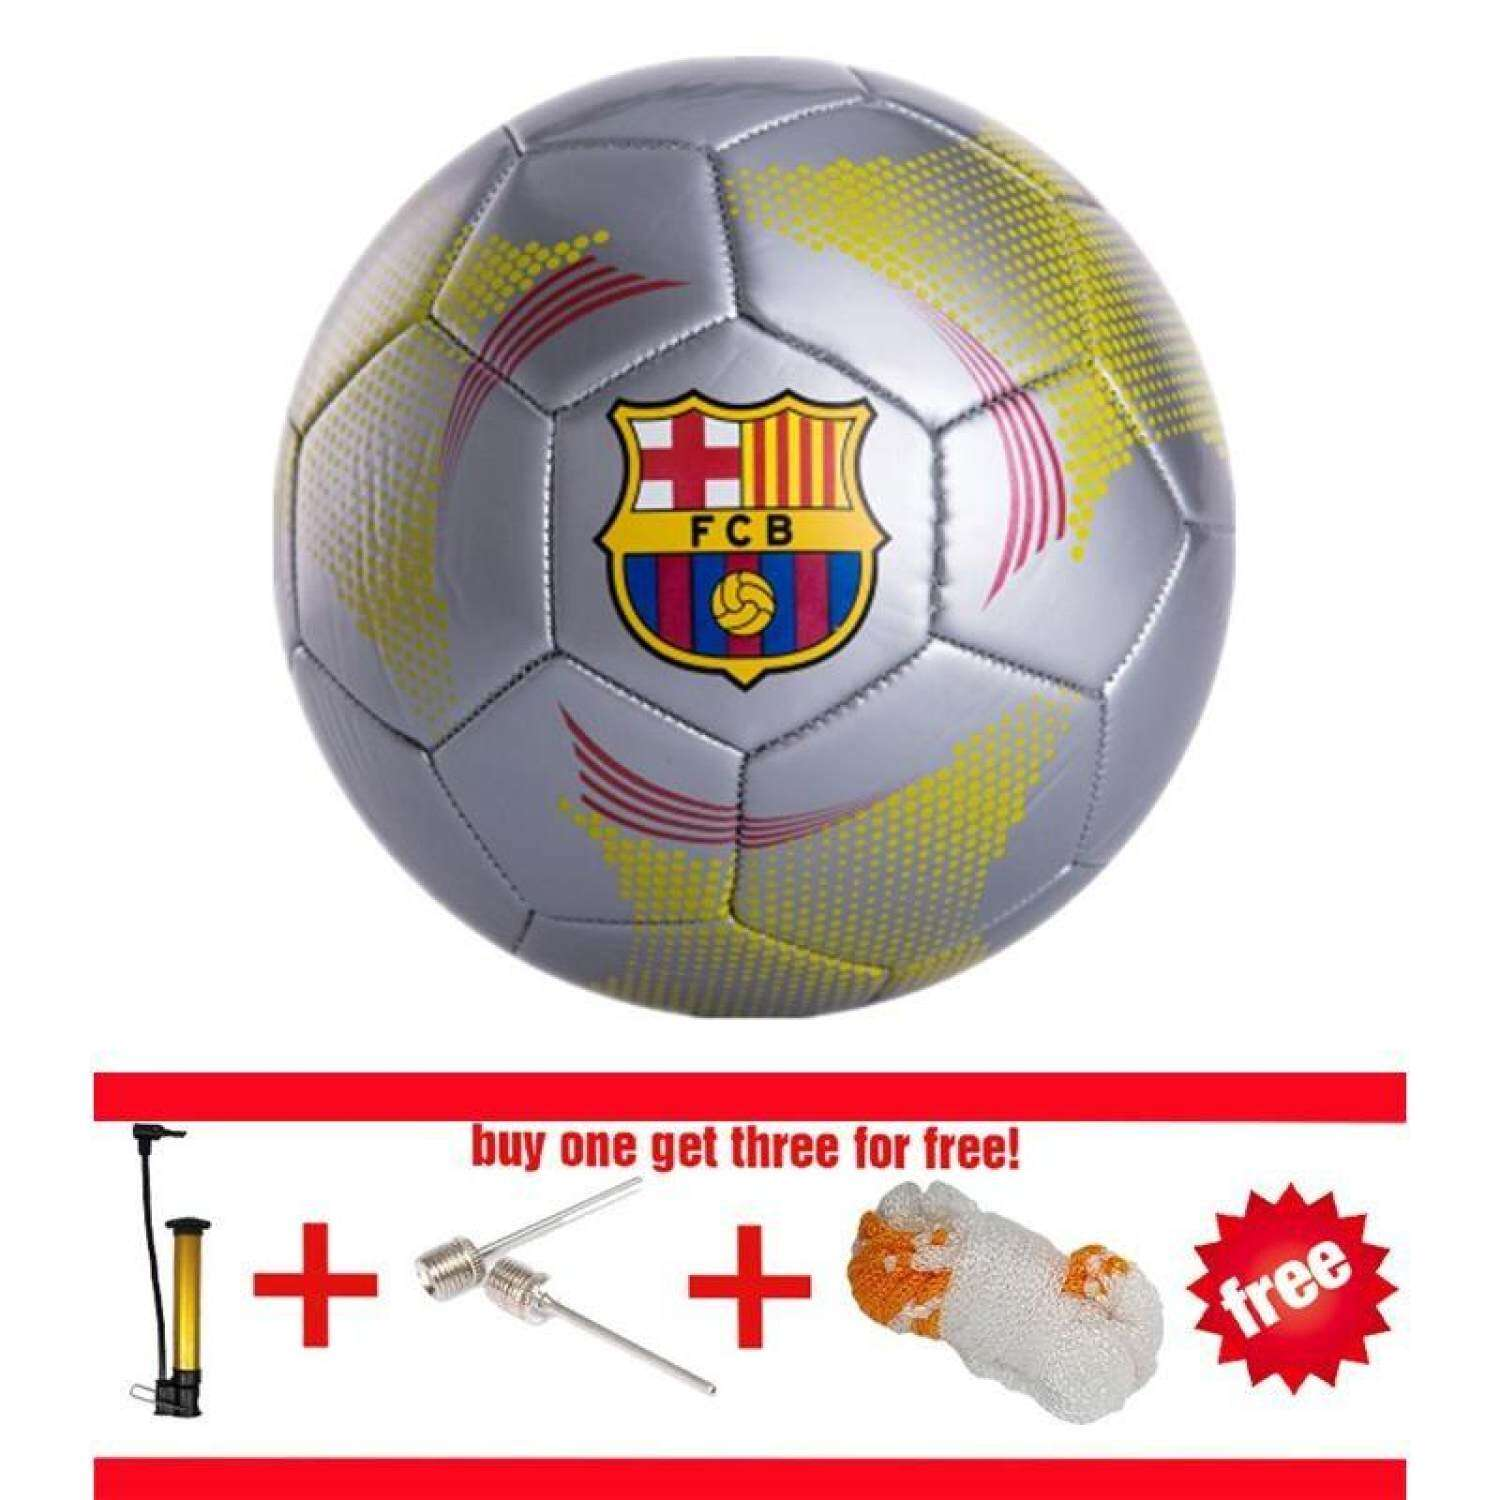 BAIGUAN WT Soccer Authentic Barca Size 5 Football Professional competition  Training football High Quality Ball Free Gas Needles and Net Bag and